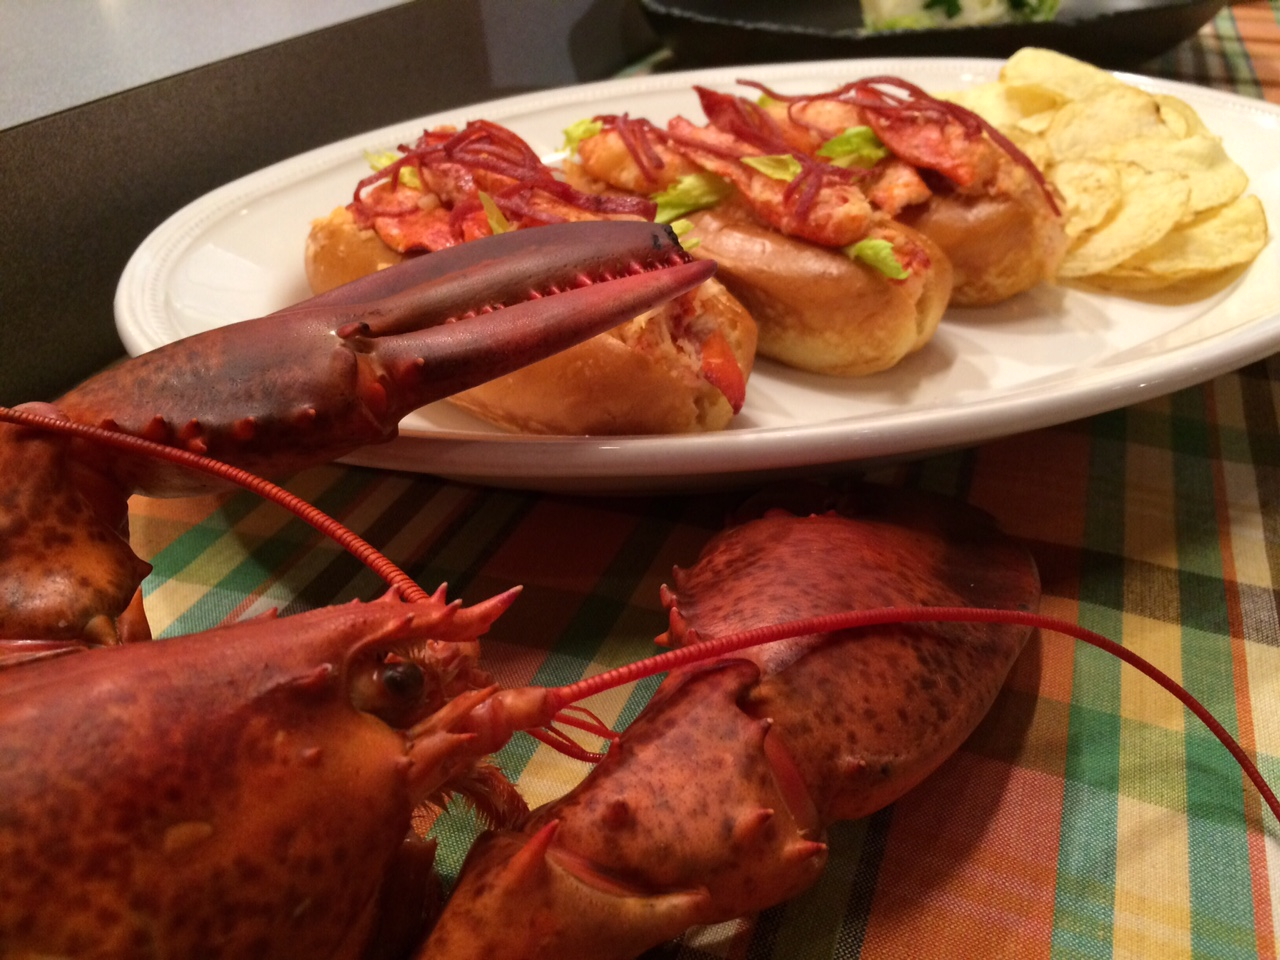 Mark Tarbell brought the lobster